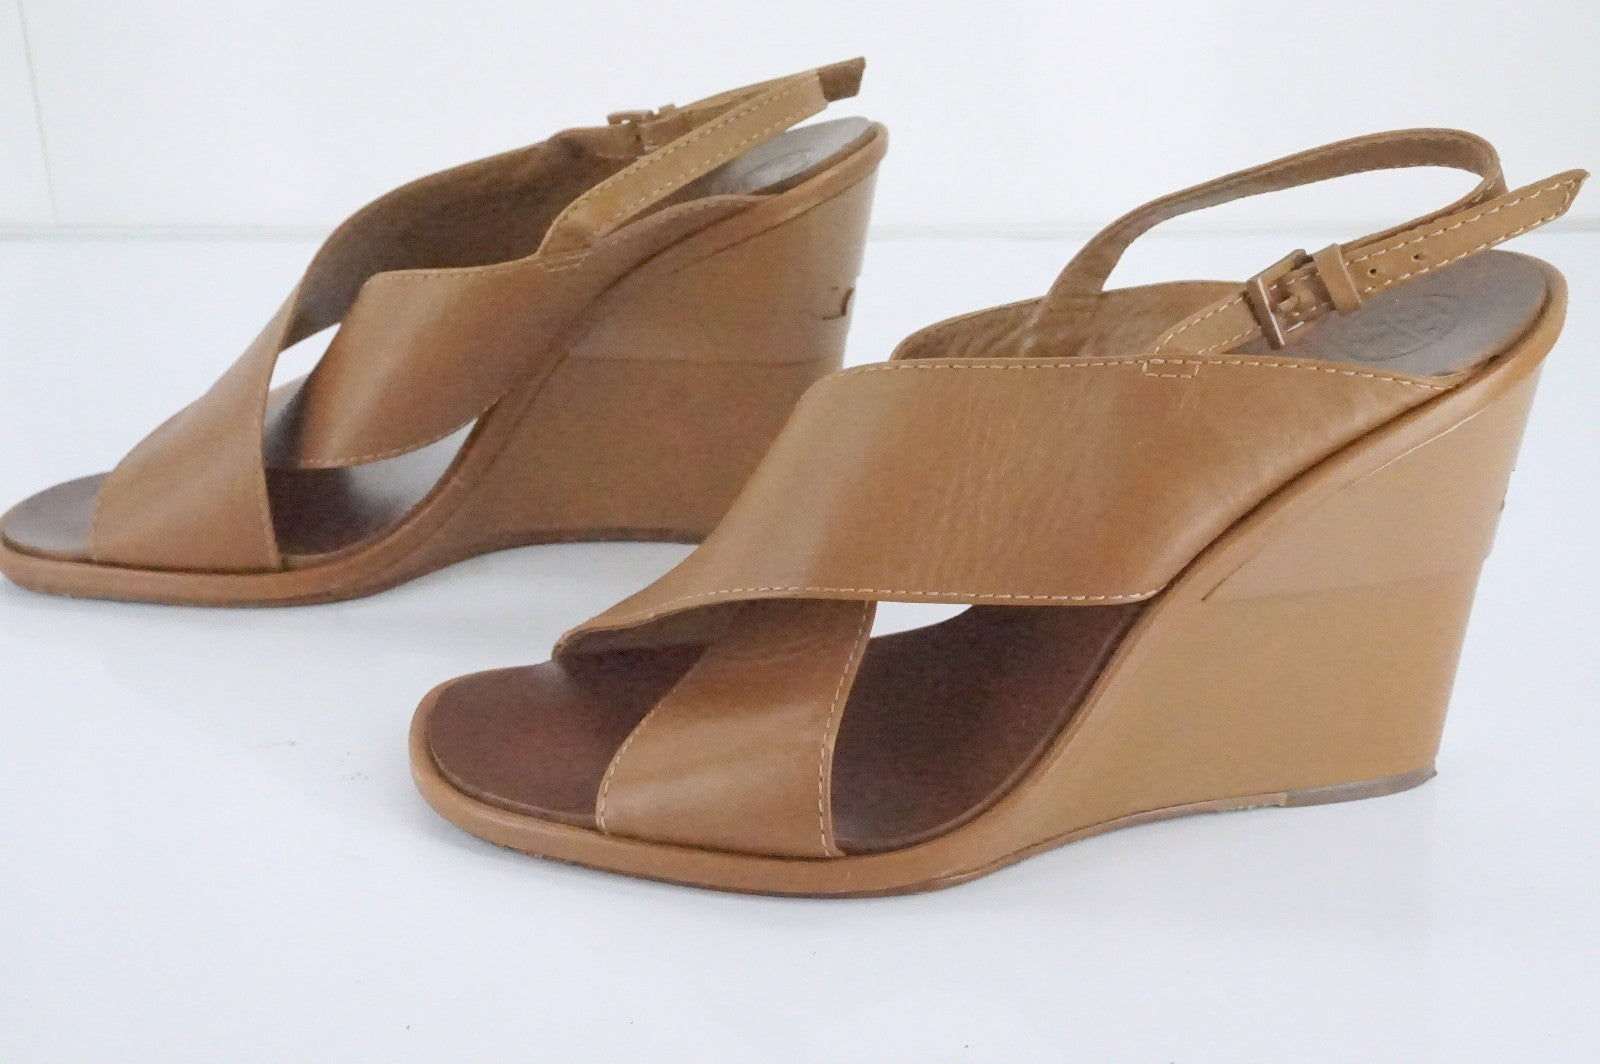 Tory Burch Brown Leather Gabrielle Cross Strap Slingback Wedge Sandals SZ 9 $350